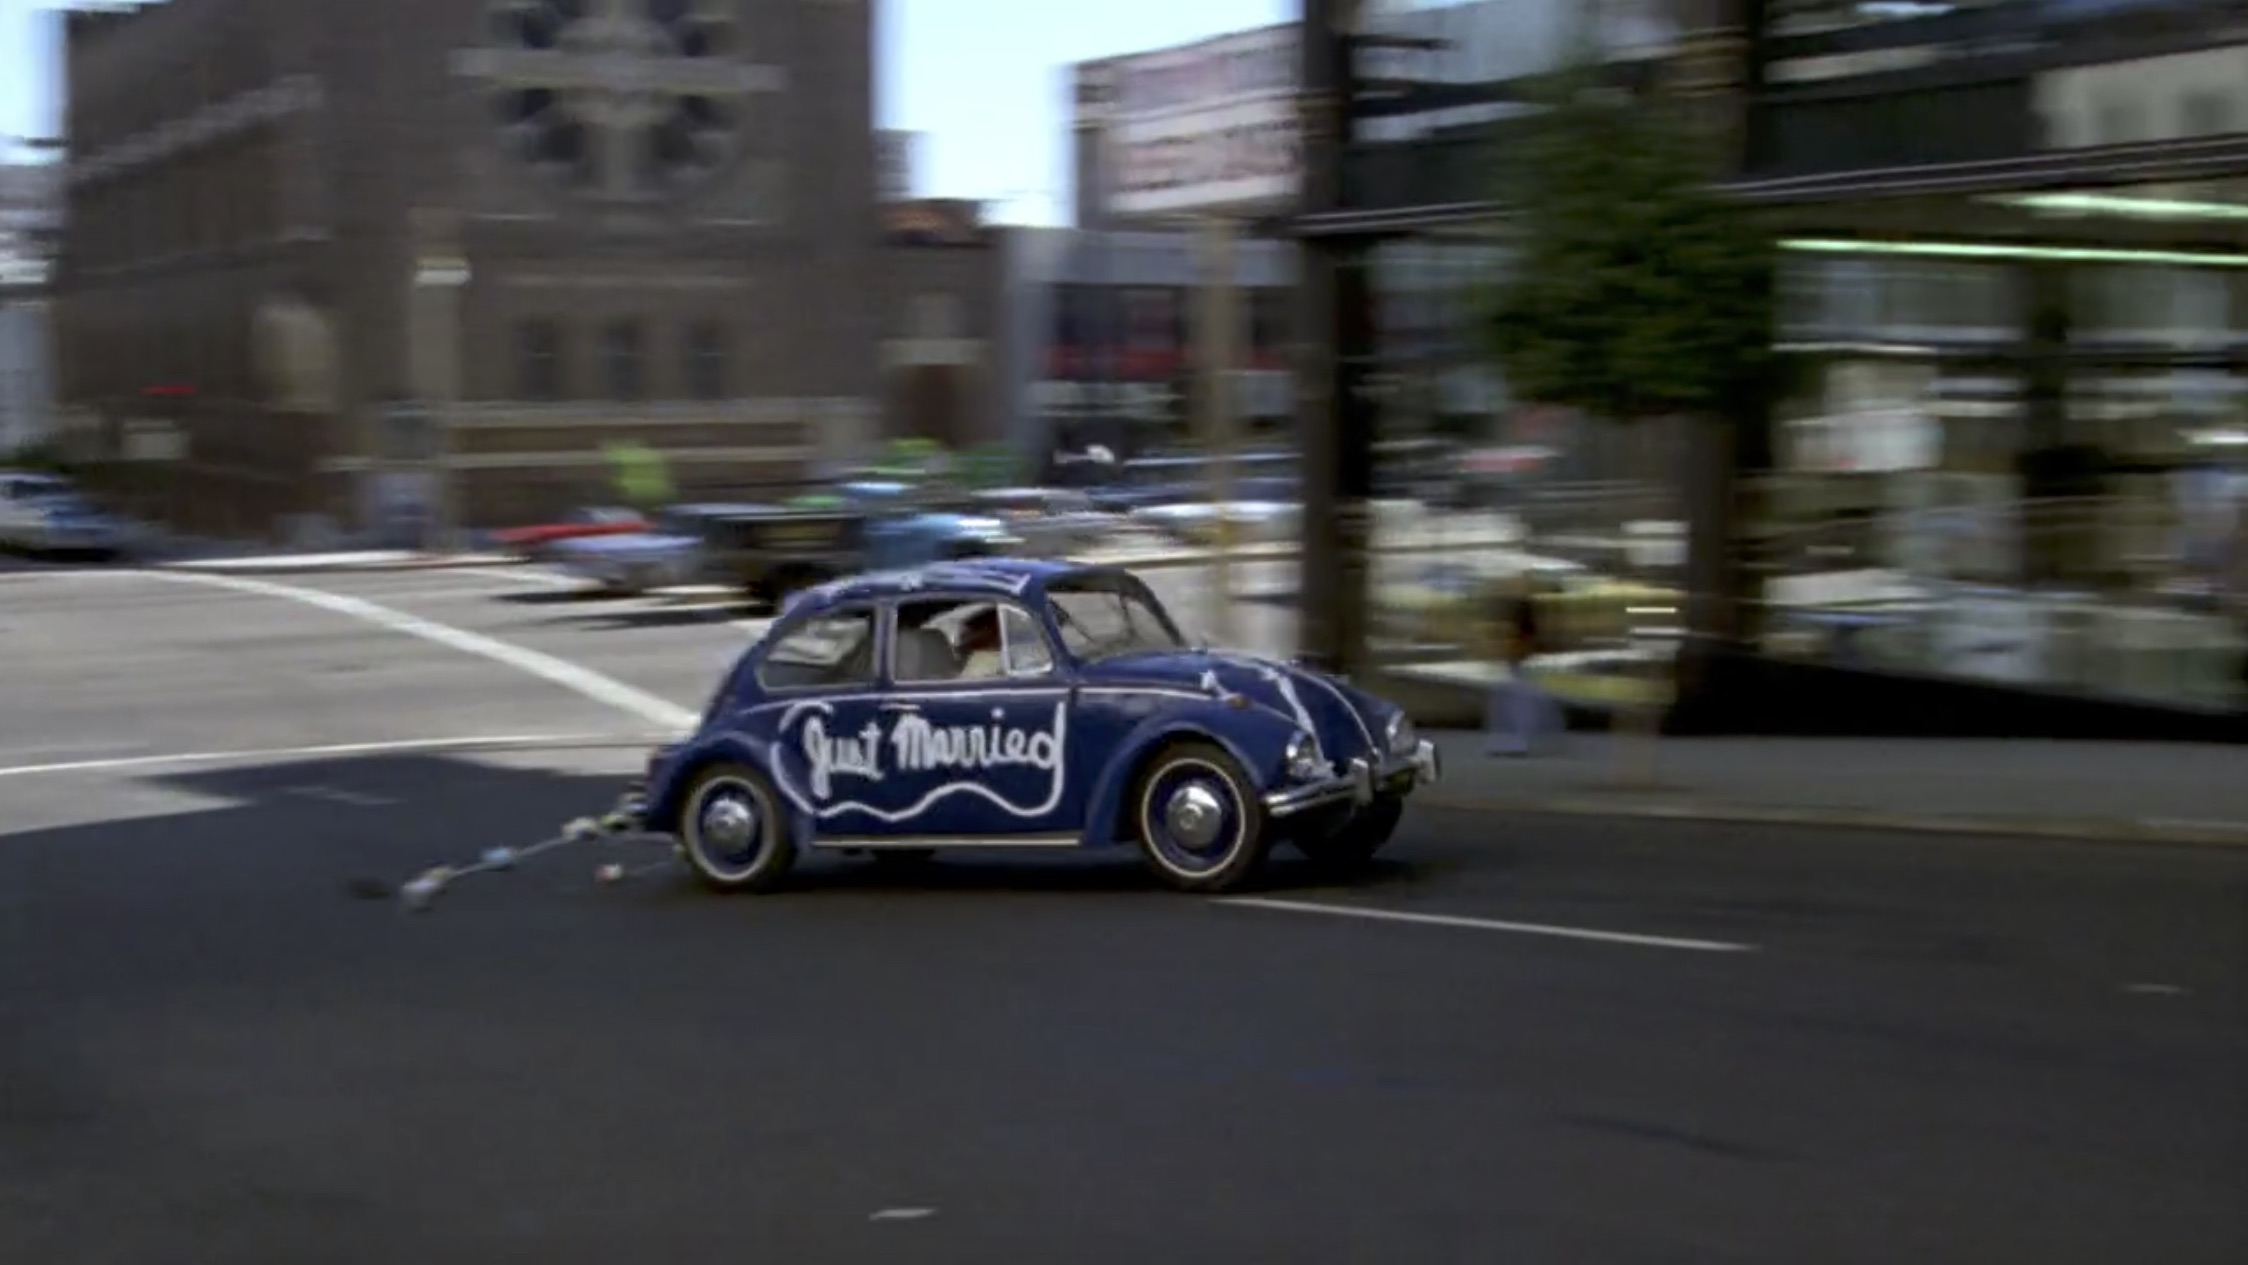 What's Up, Doc? beetle on the run